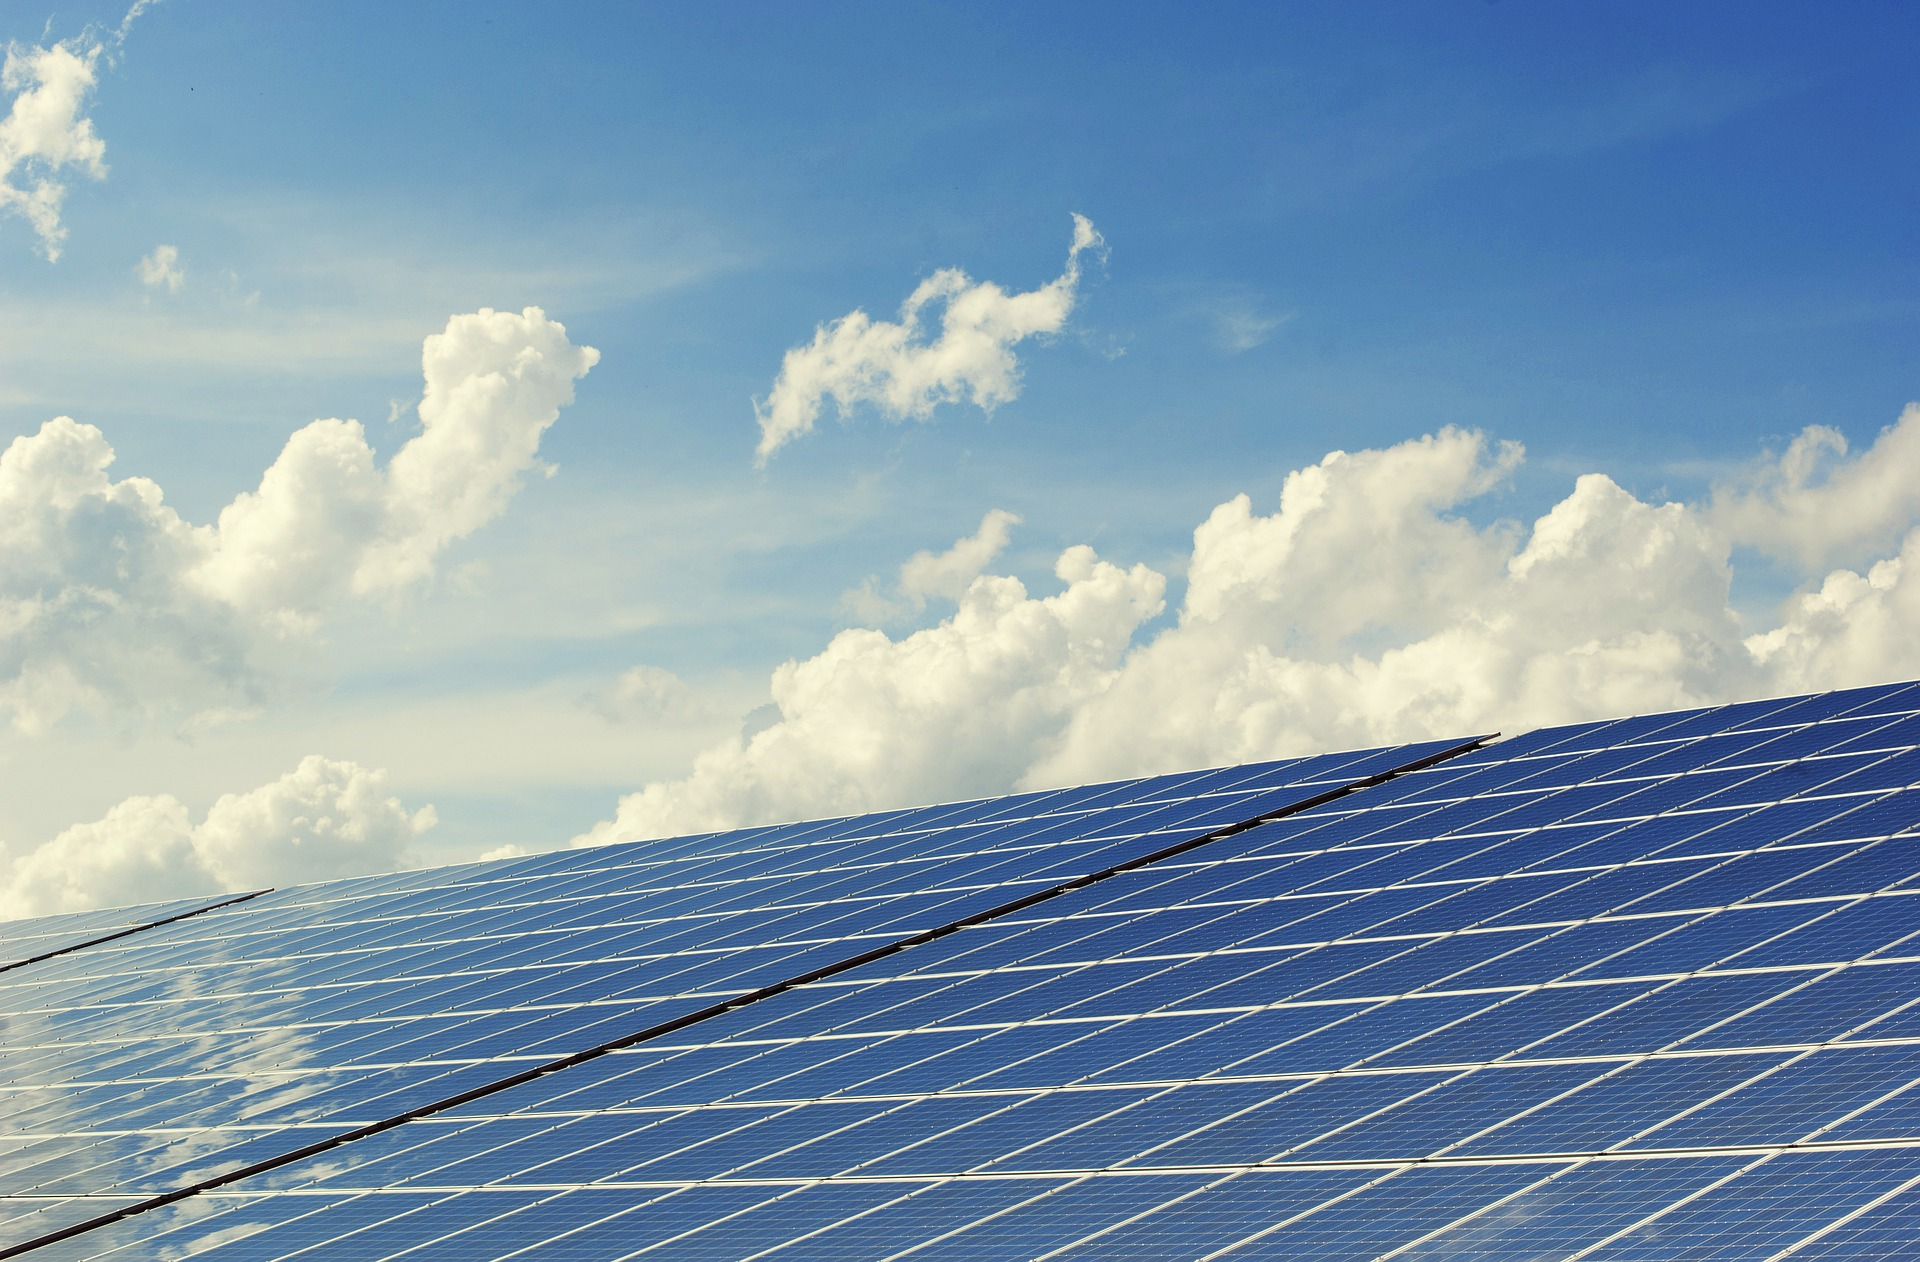 The U.S. Department of Energy awarded $21 million to fund advancements in solar-thermal desalination technologies.